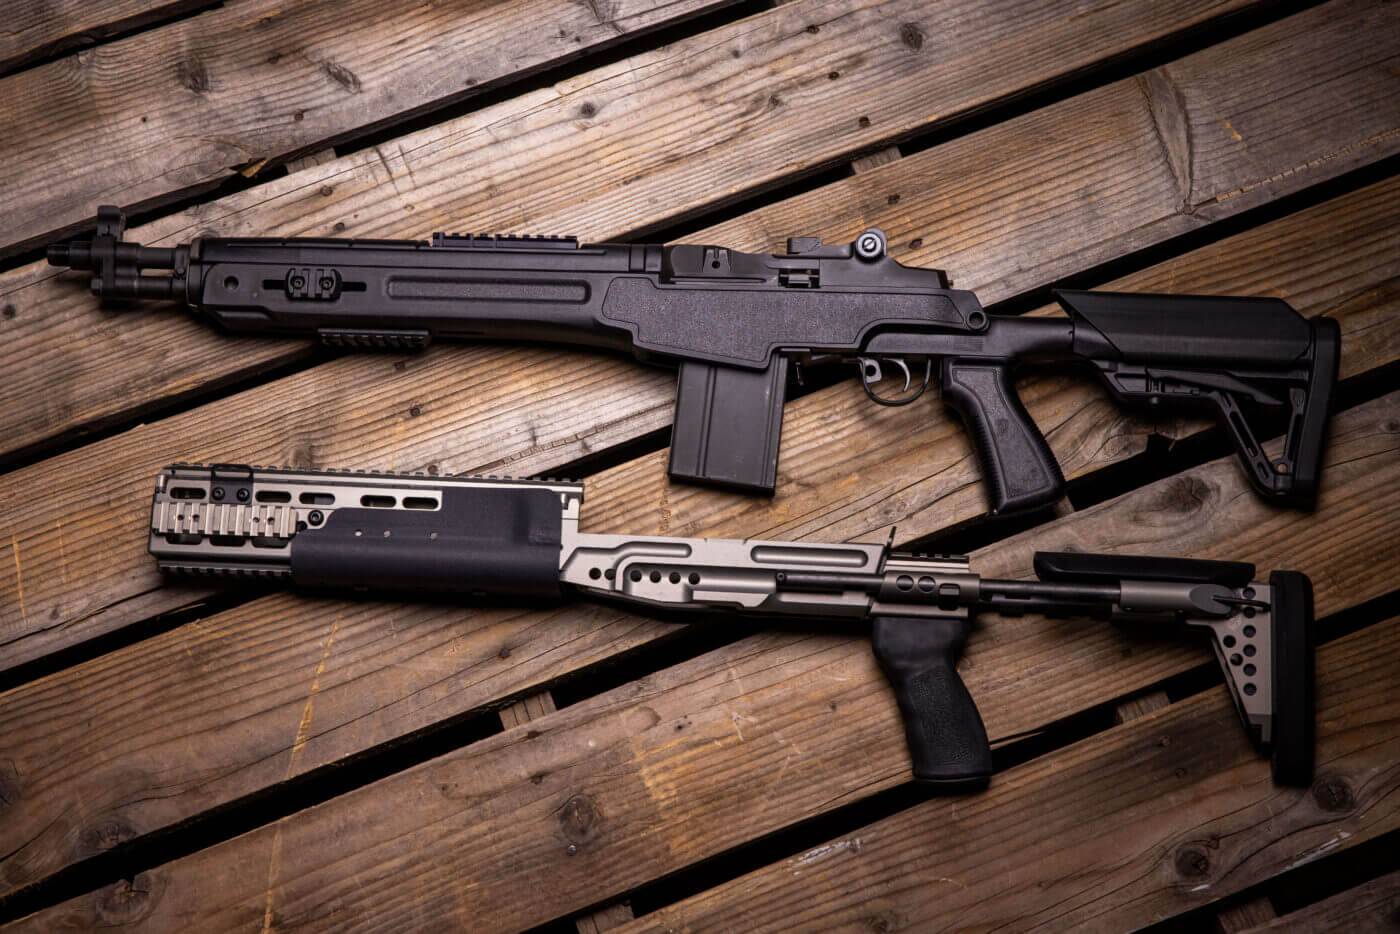 M1A Sage chassis rifle stock